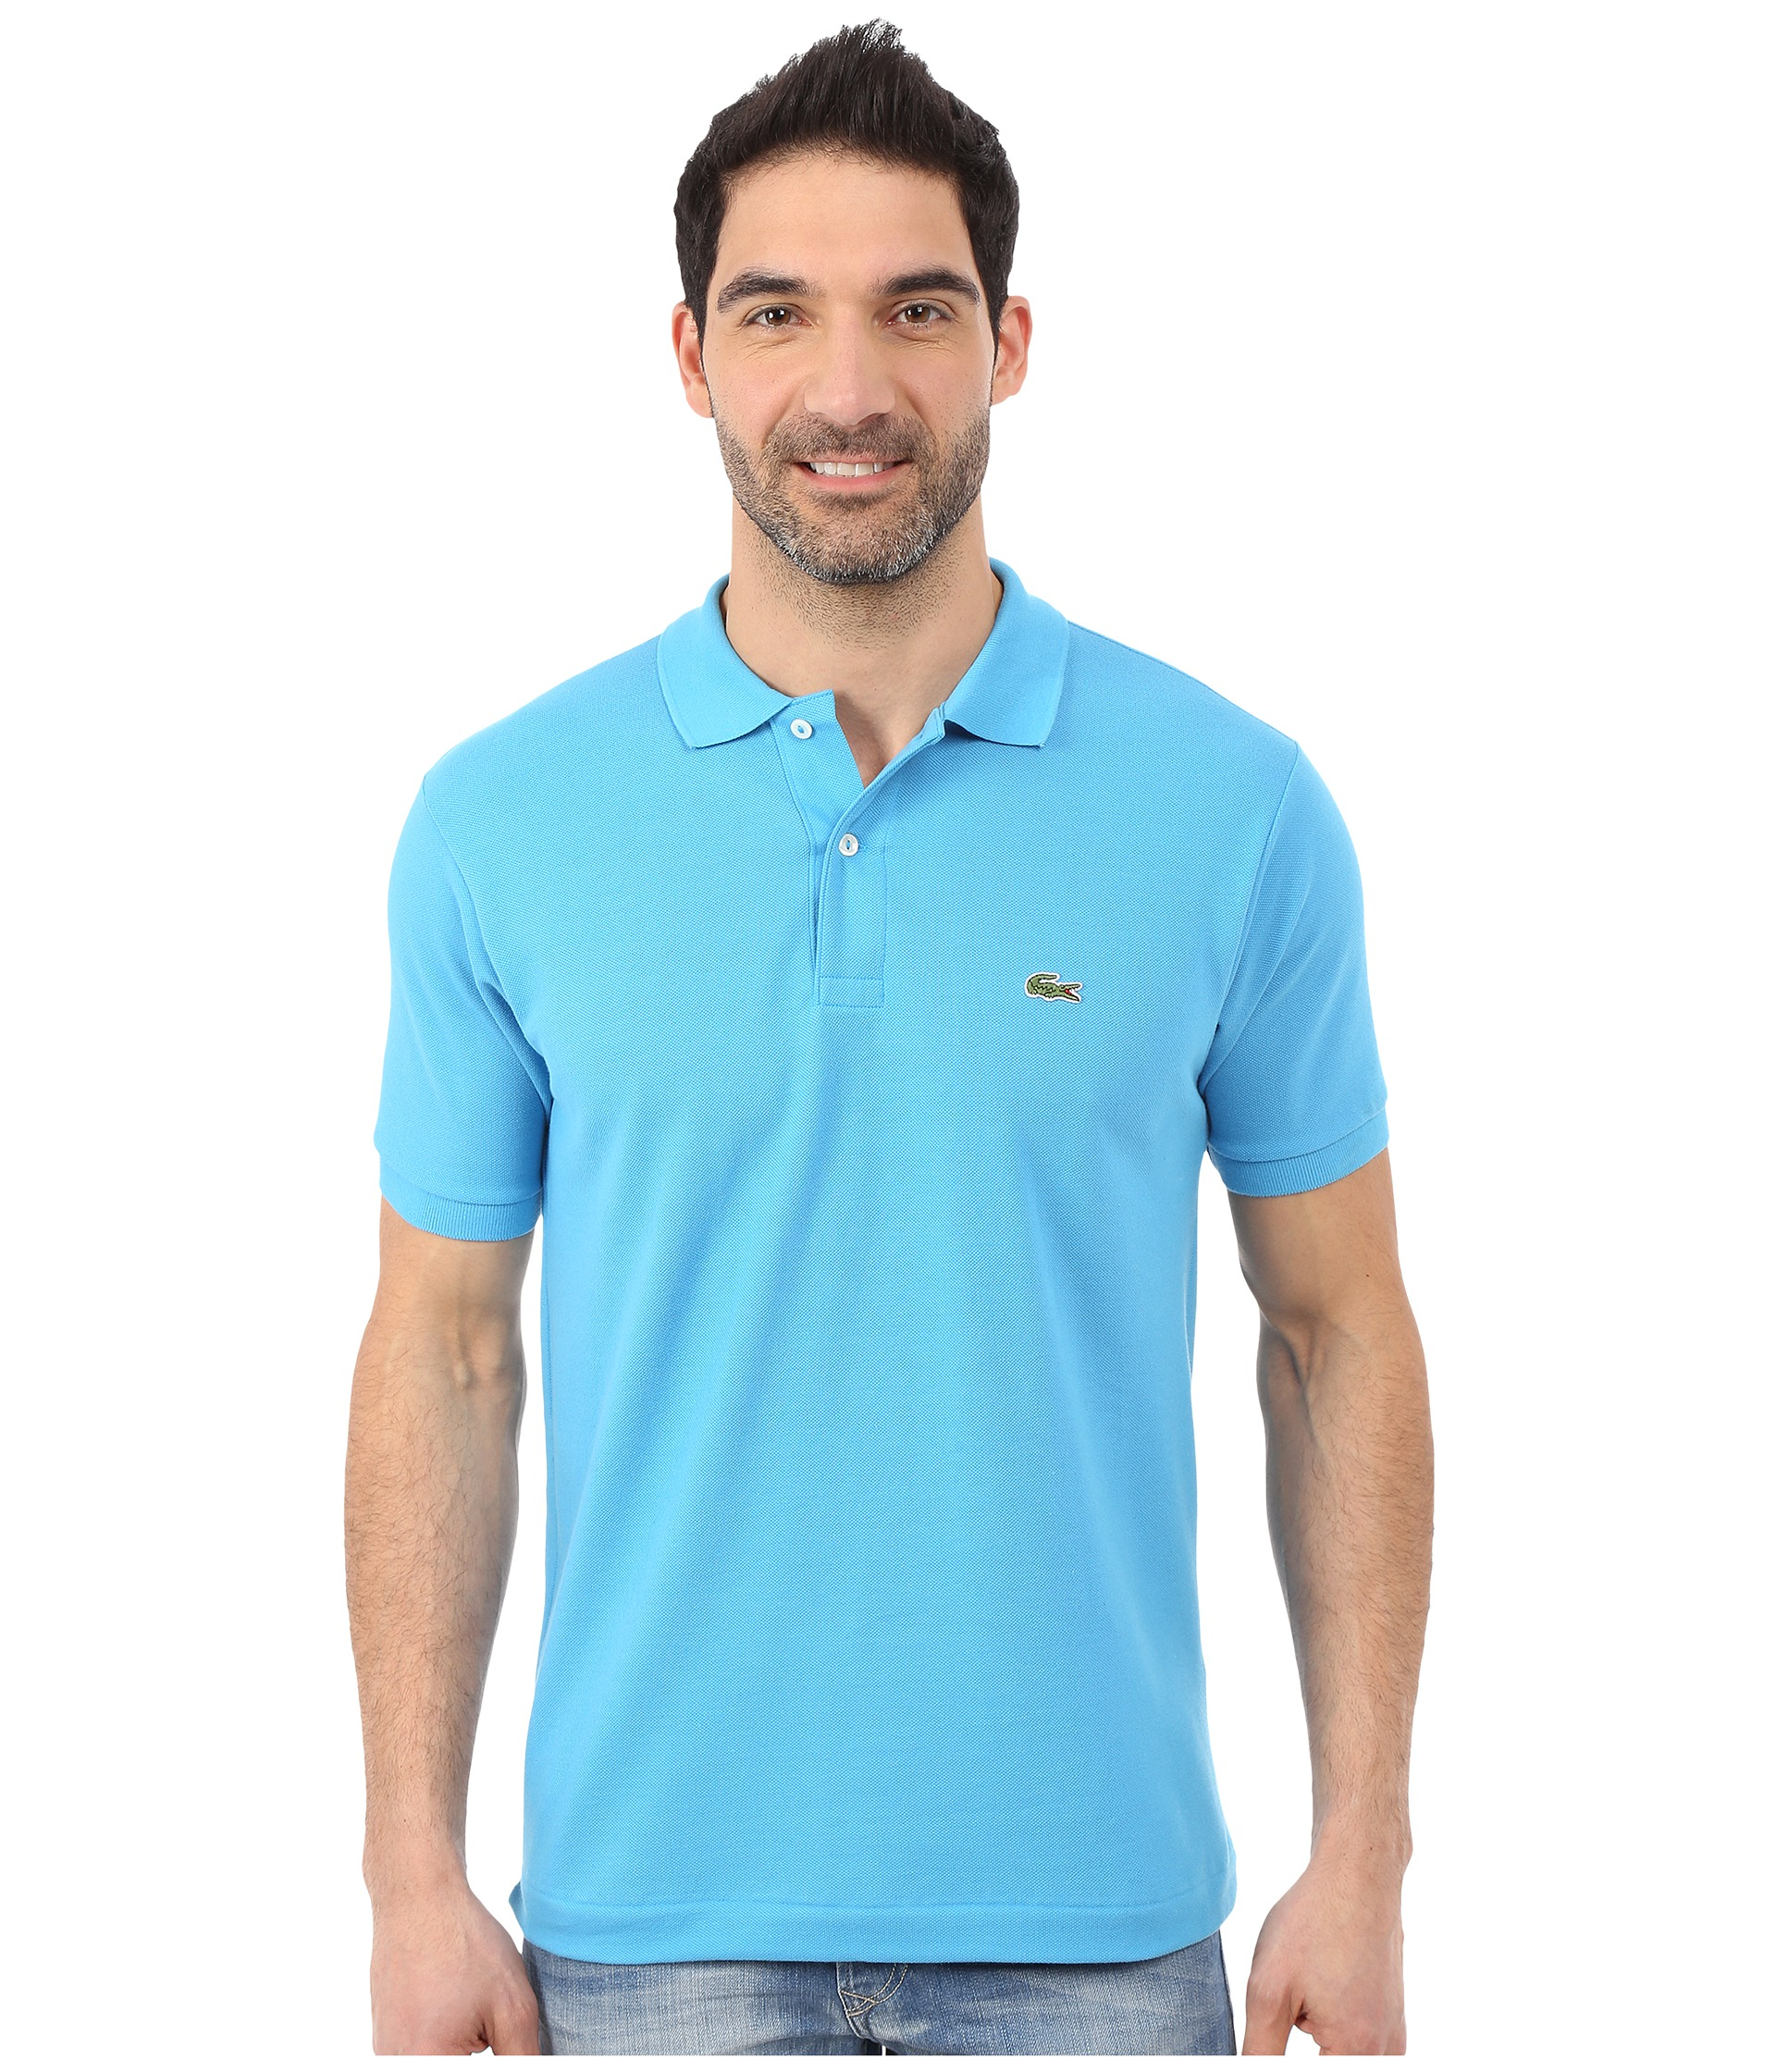 Blue lacoste polo shirt for men male models picture Man in polo shirt